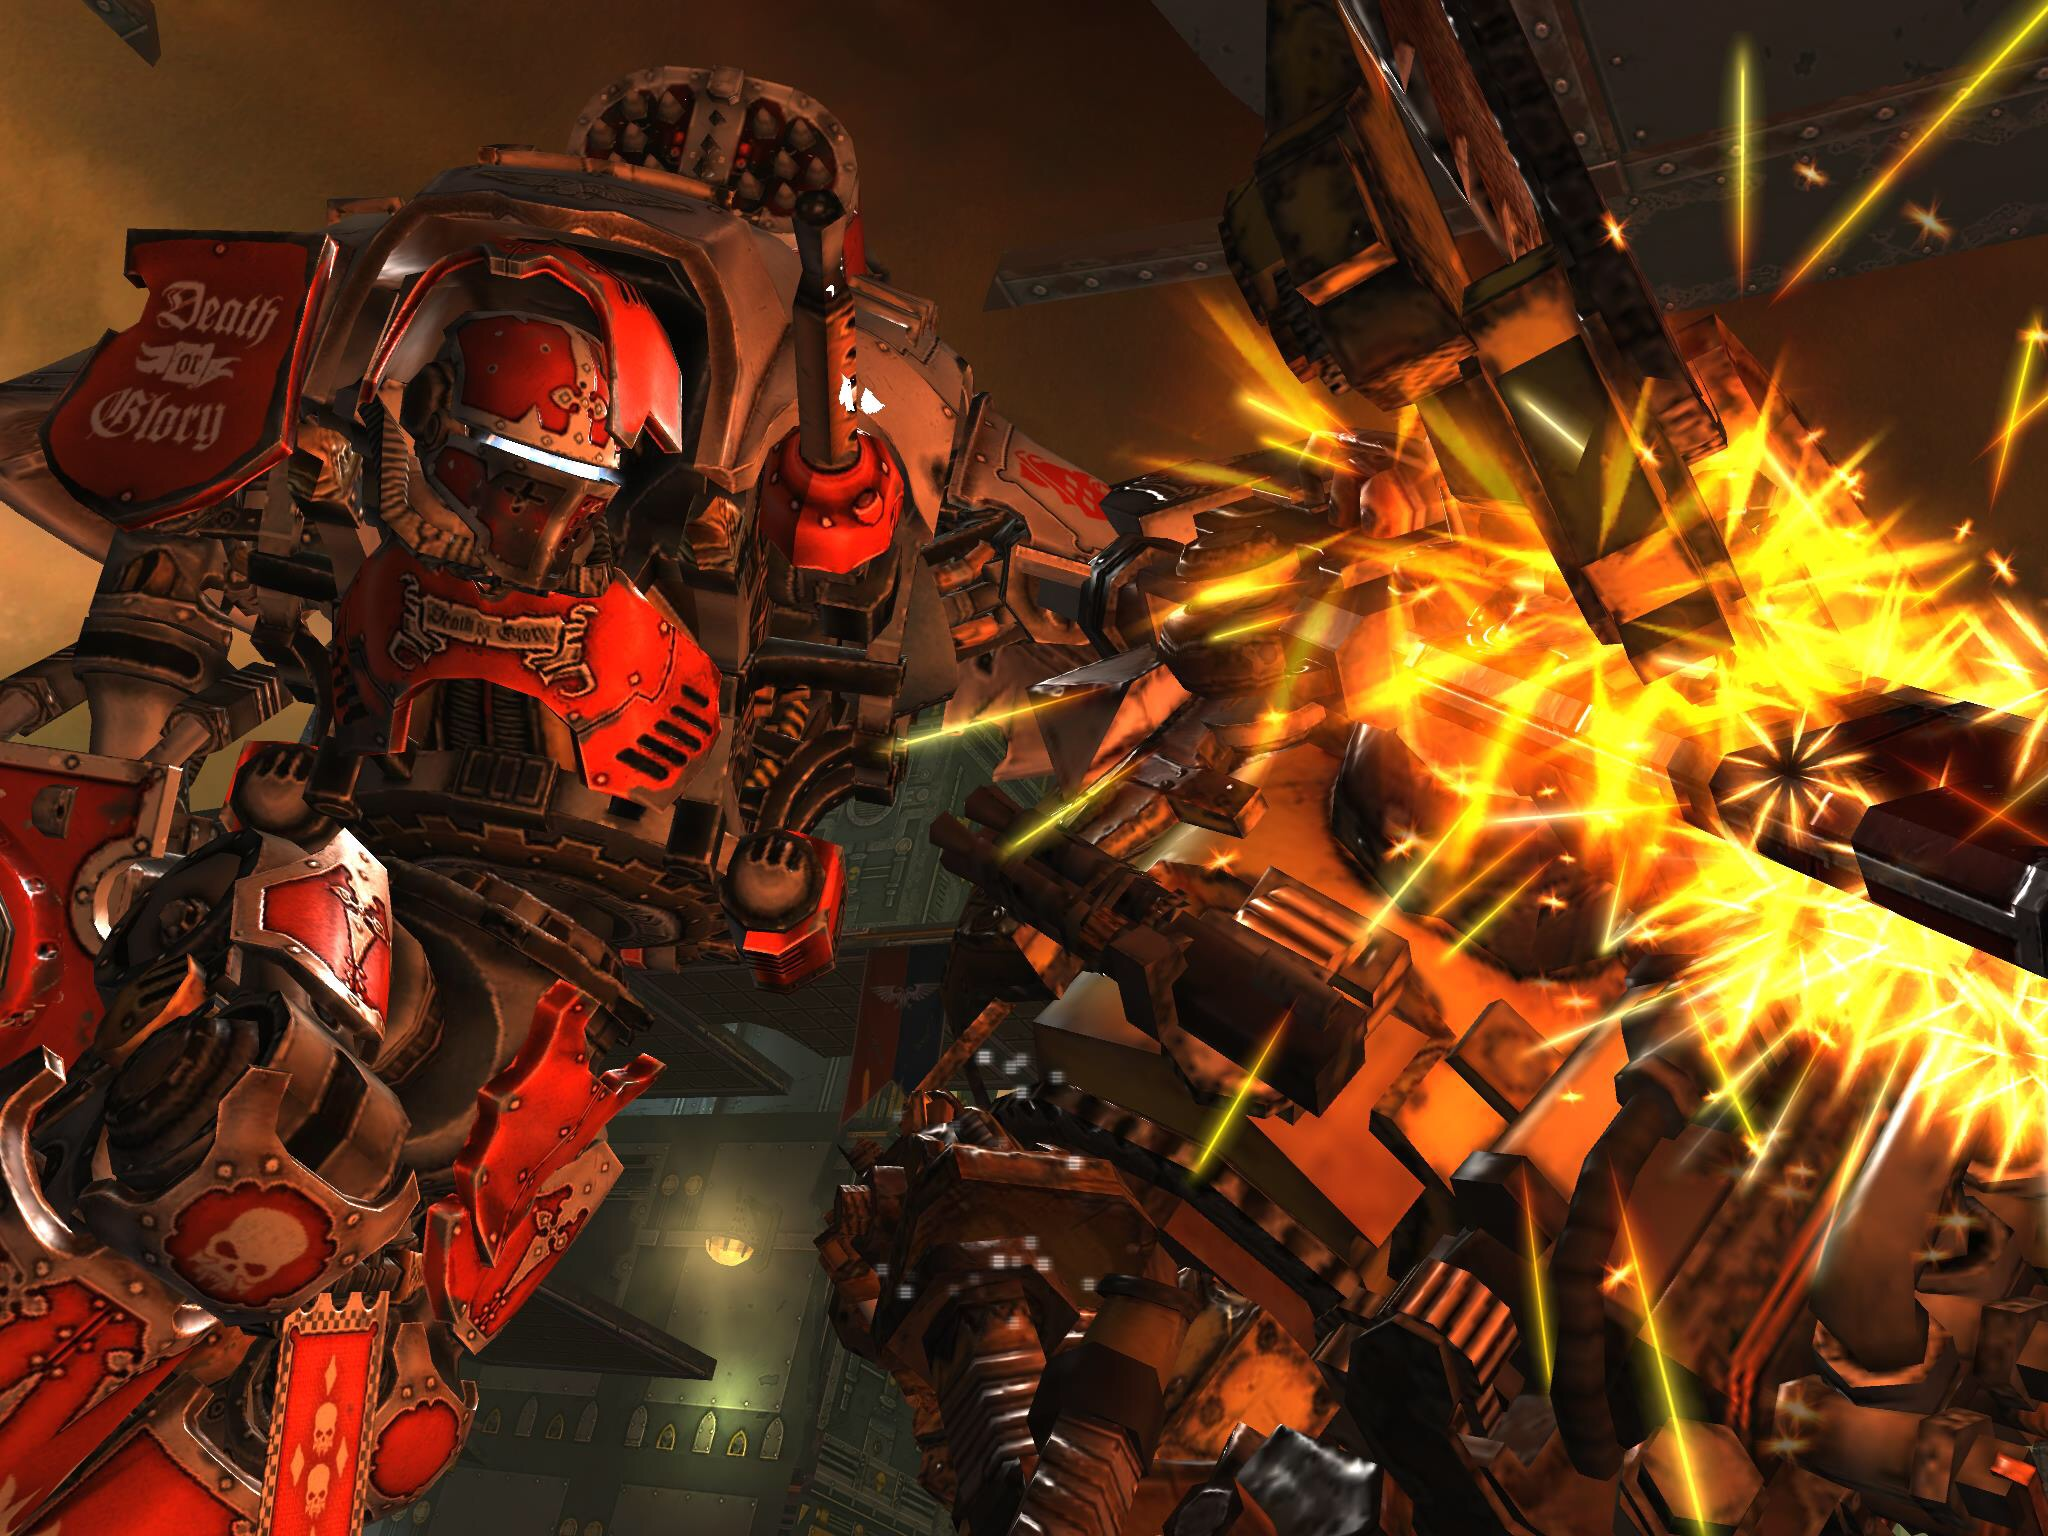 Hands-on with Pixel Toy's Warhammer 40,000: Freeblade